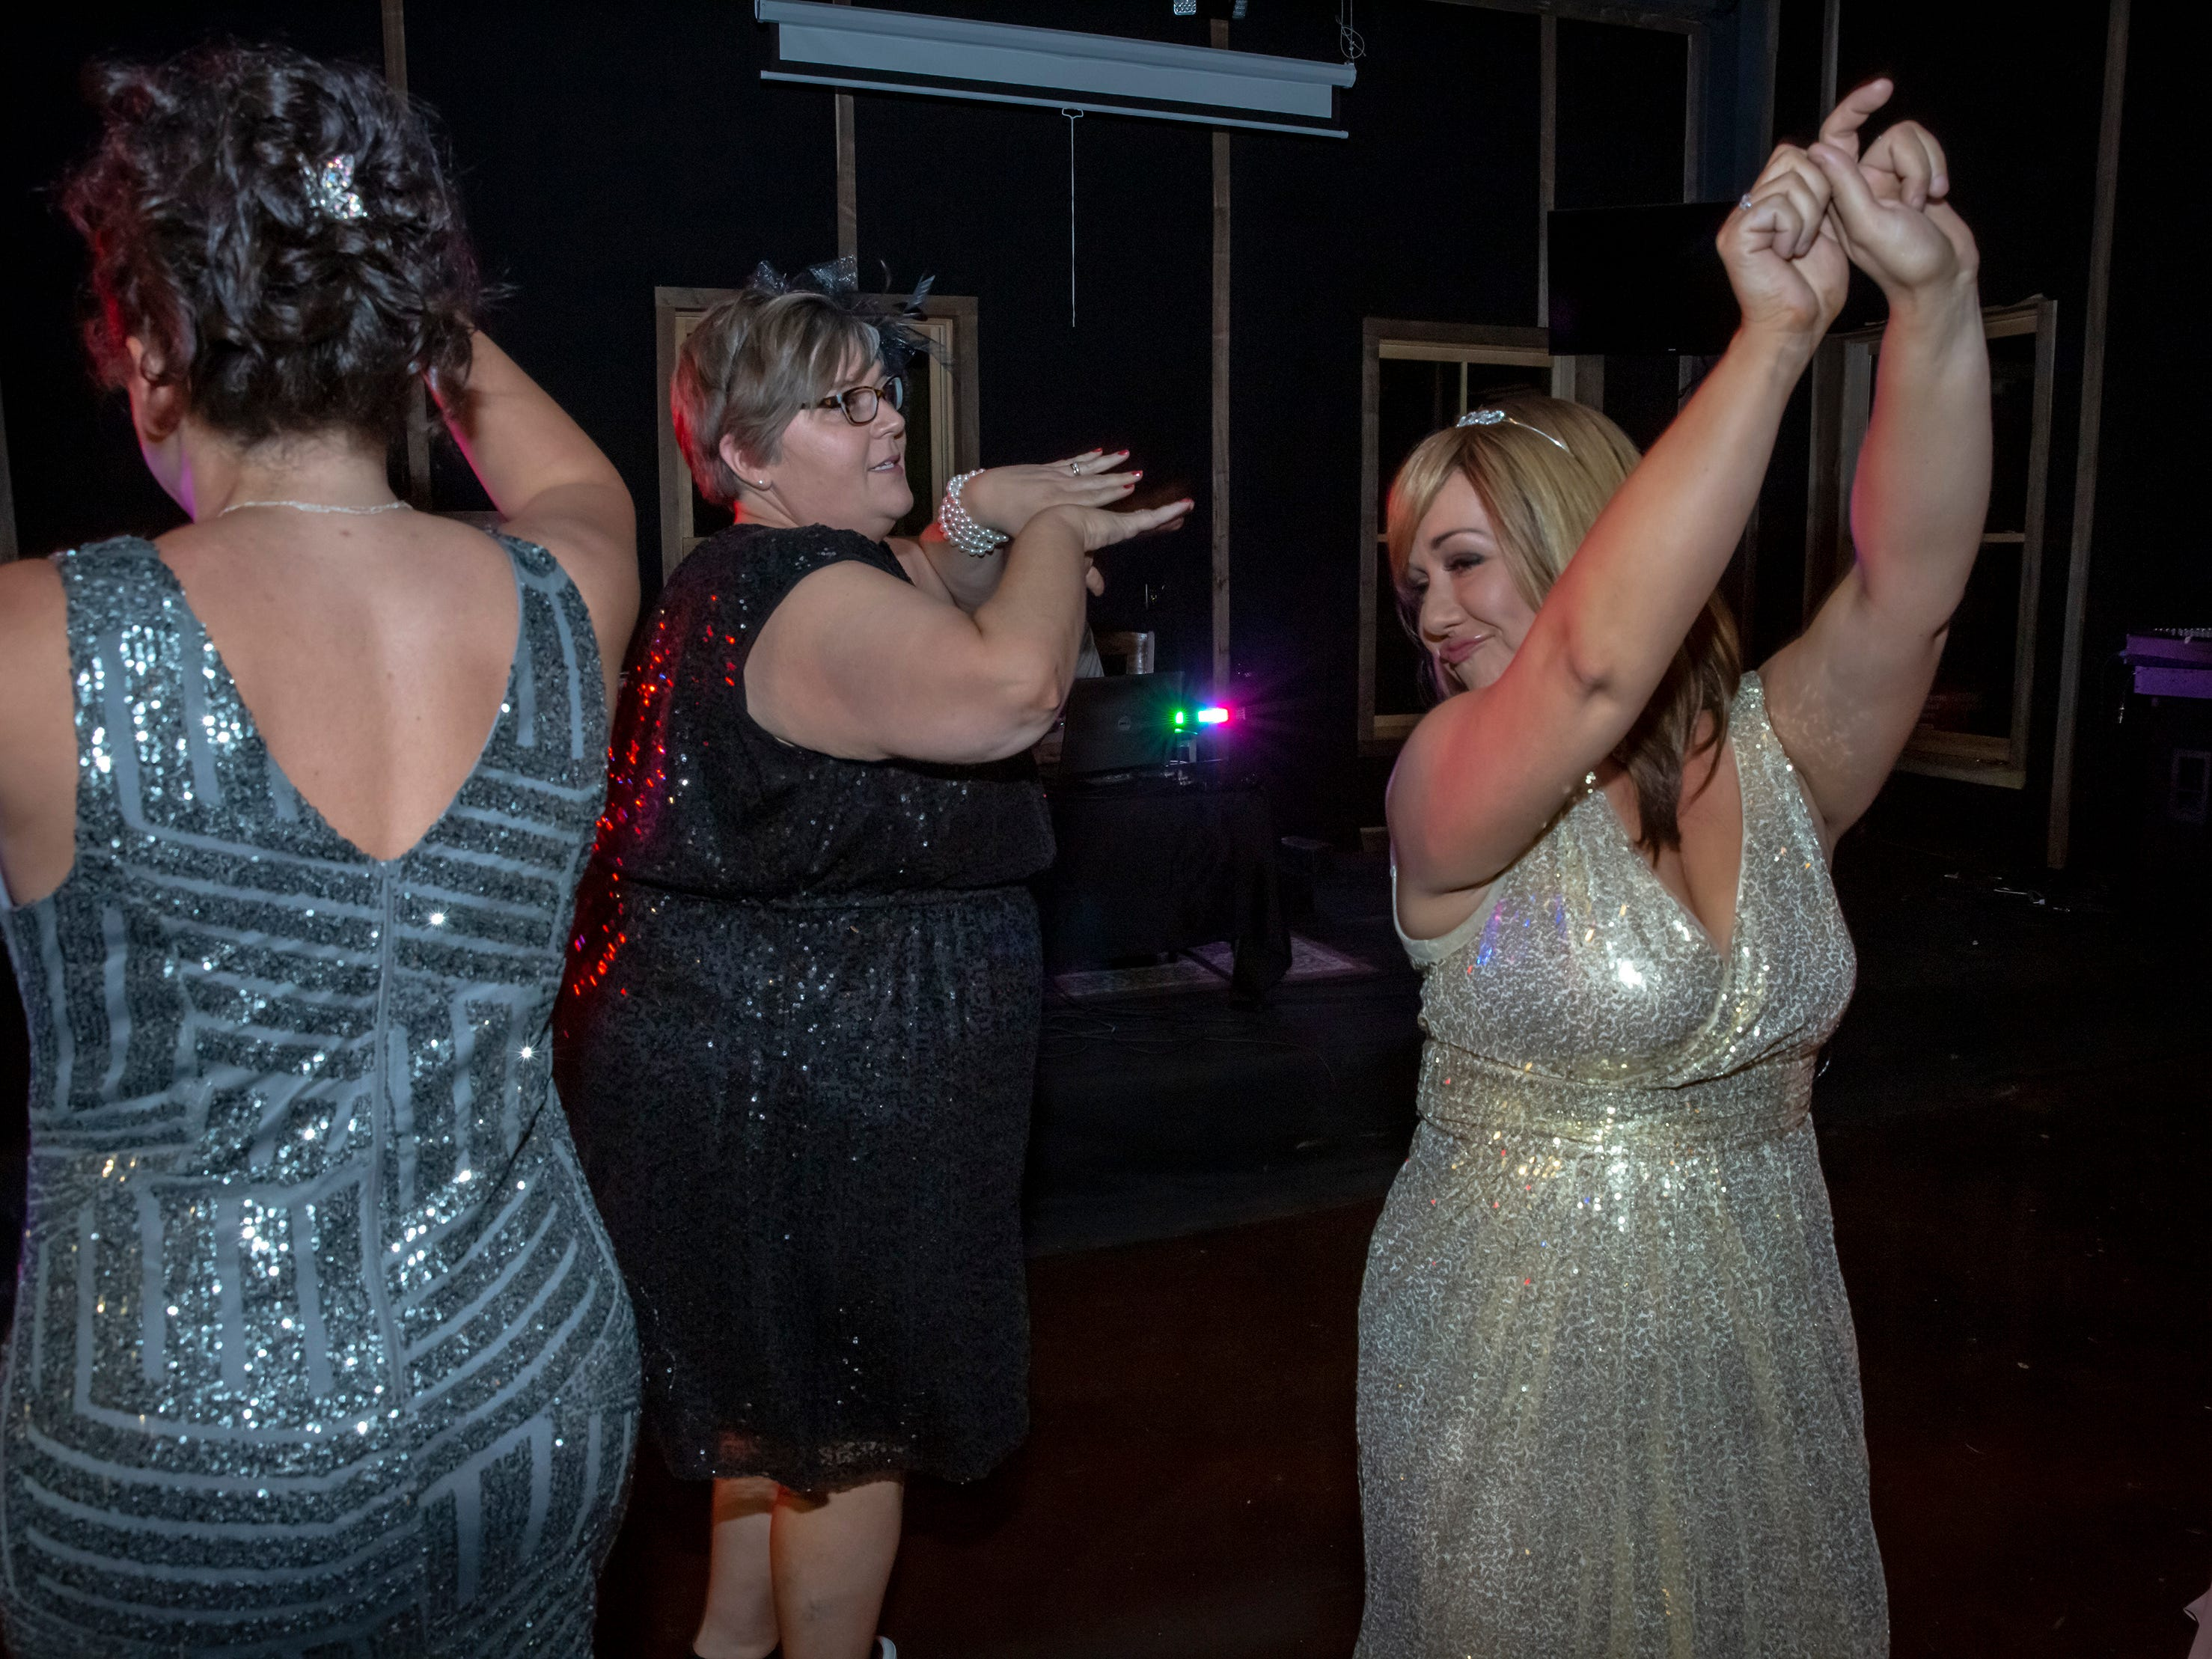 Adult Prom held at Hop Springs to benefit Kymari House, Saturday, May 11, 2019.